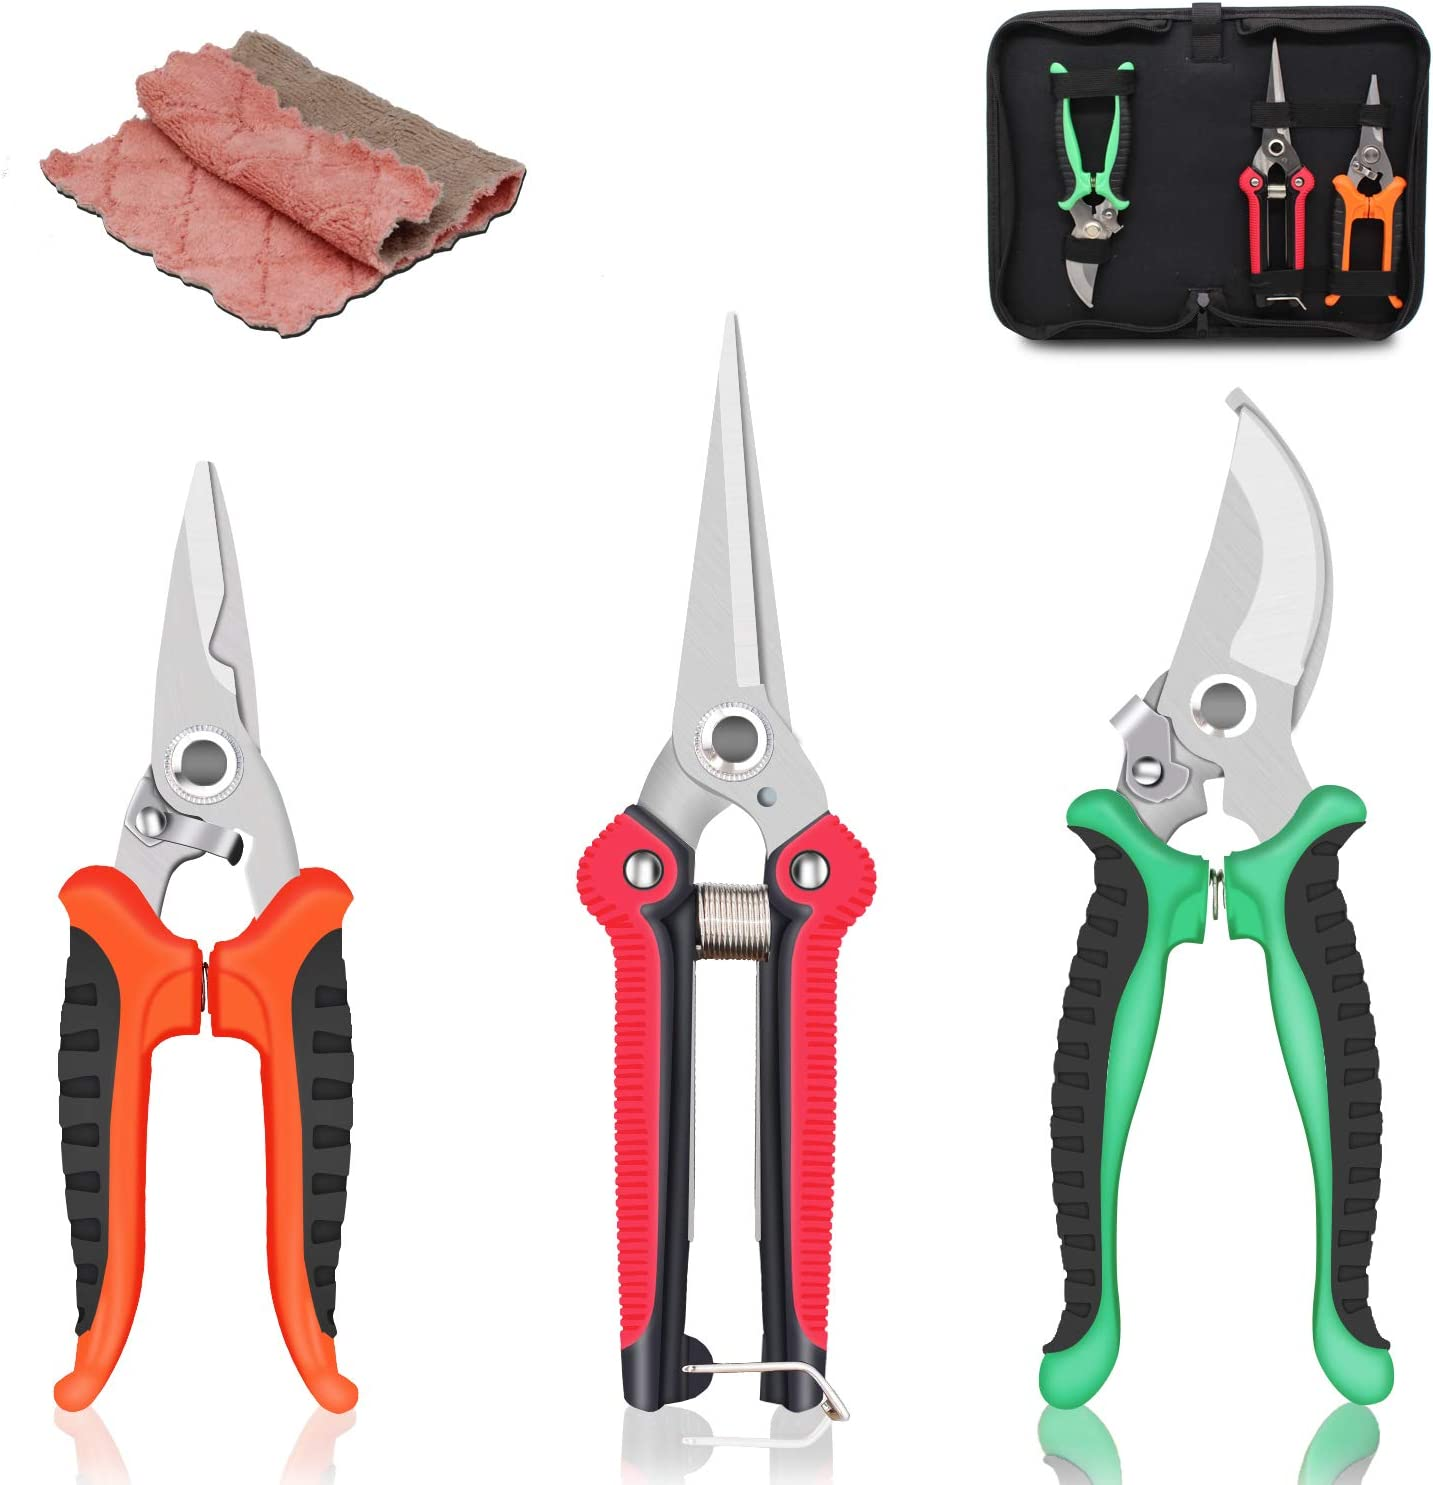 SUMYOUNG Steel Pruning Shears, Professional Gardening Shears, 3 Pcs Usefull Garden Trimming Scissor Set with Sharp and Durable Blades, Comfortable Handle, Safety Lock, Include a Storage Bag